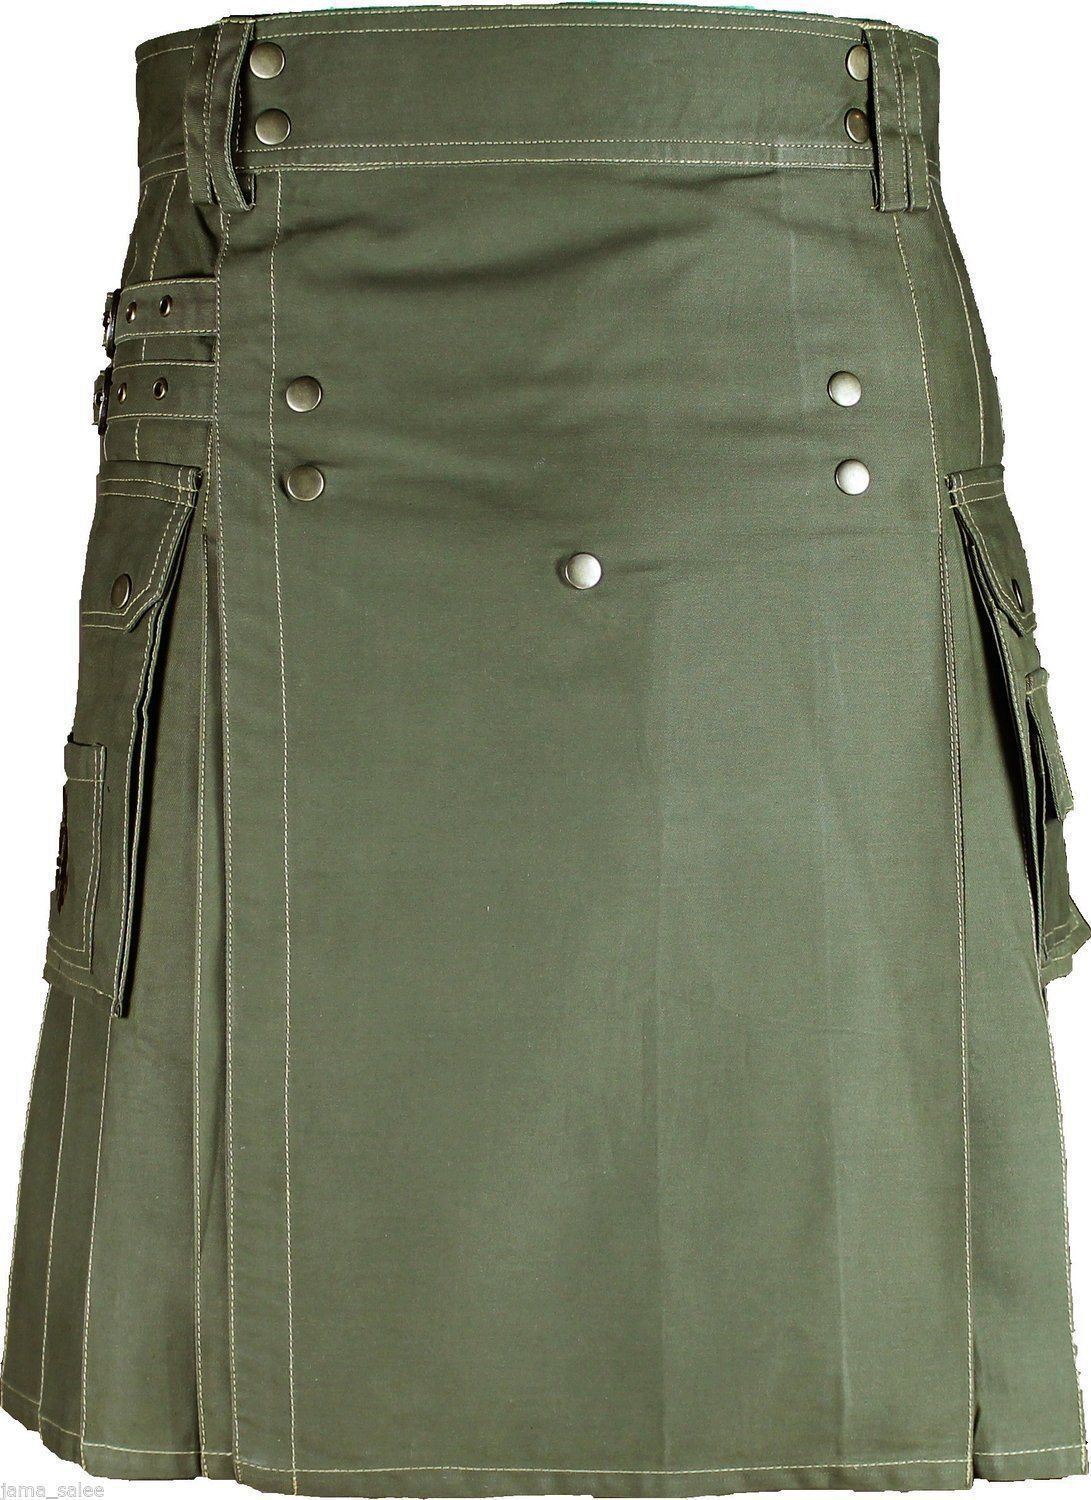 Unisex Modern Utility Kilt Olive Green Cotton Kilt Brass Material Scottish Kilt Fit to 32 Waist